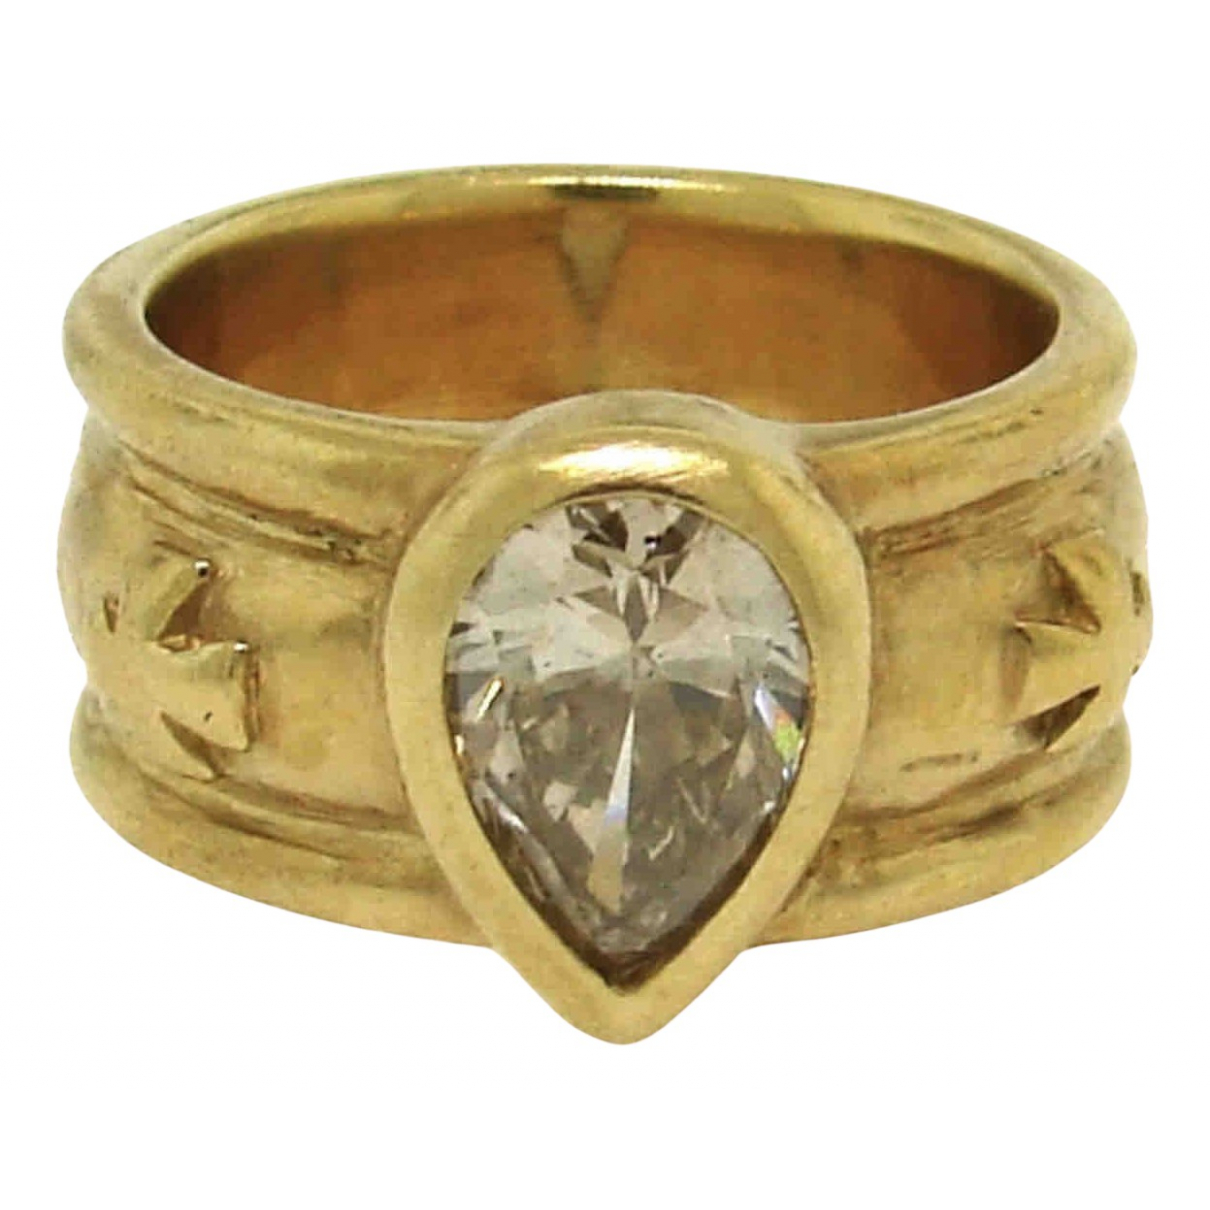 Loree Rodkin \N Gold Yellow gold ring for Women 7 ½ US